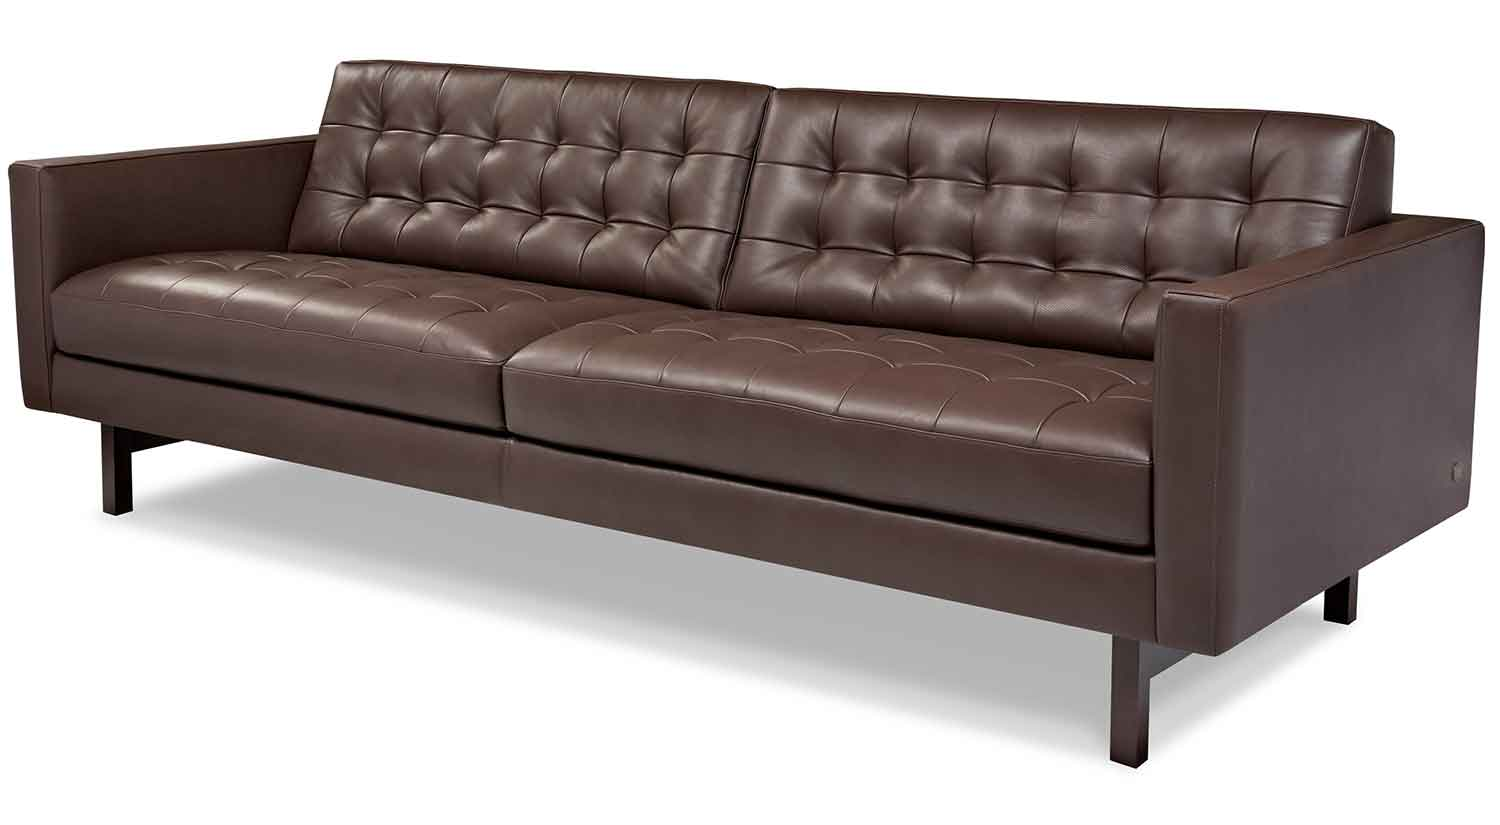 parker sofa and loveseat cama abatible barcelona circle furniture designer sofas boston